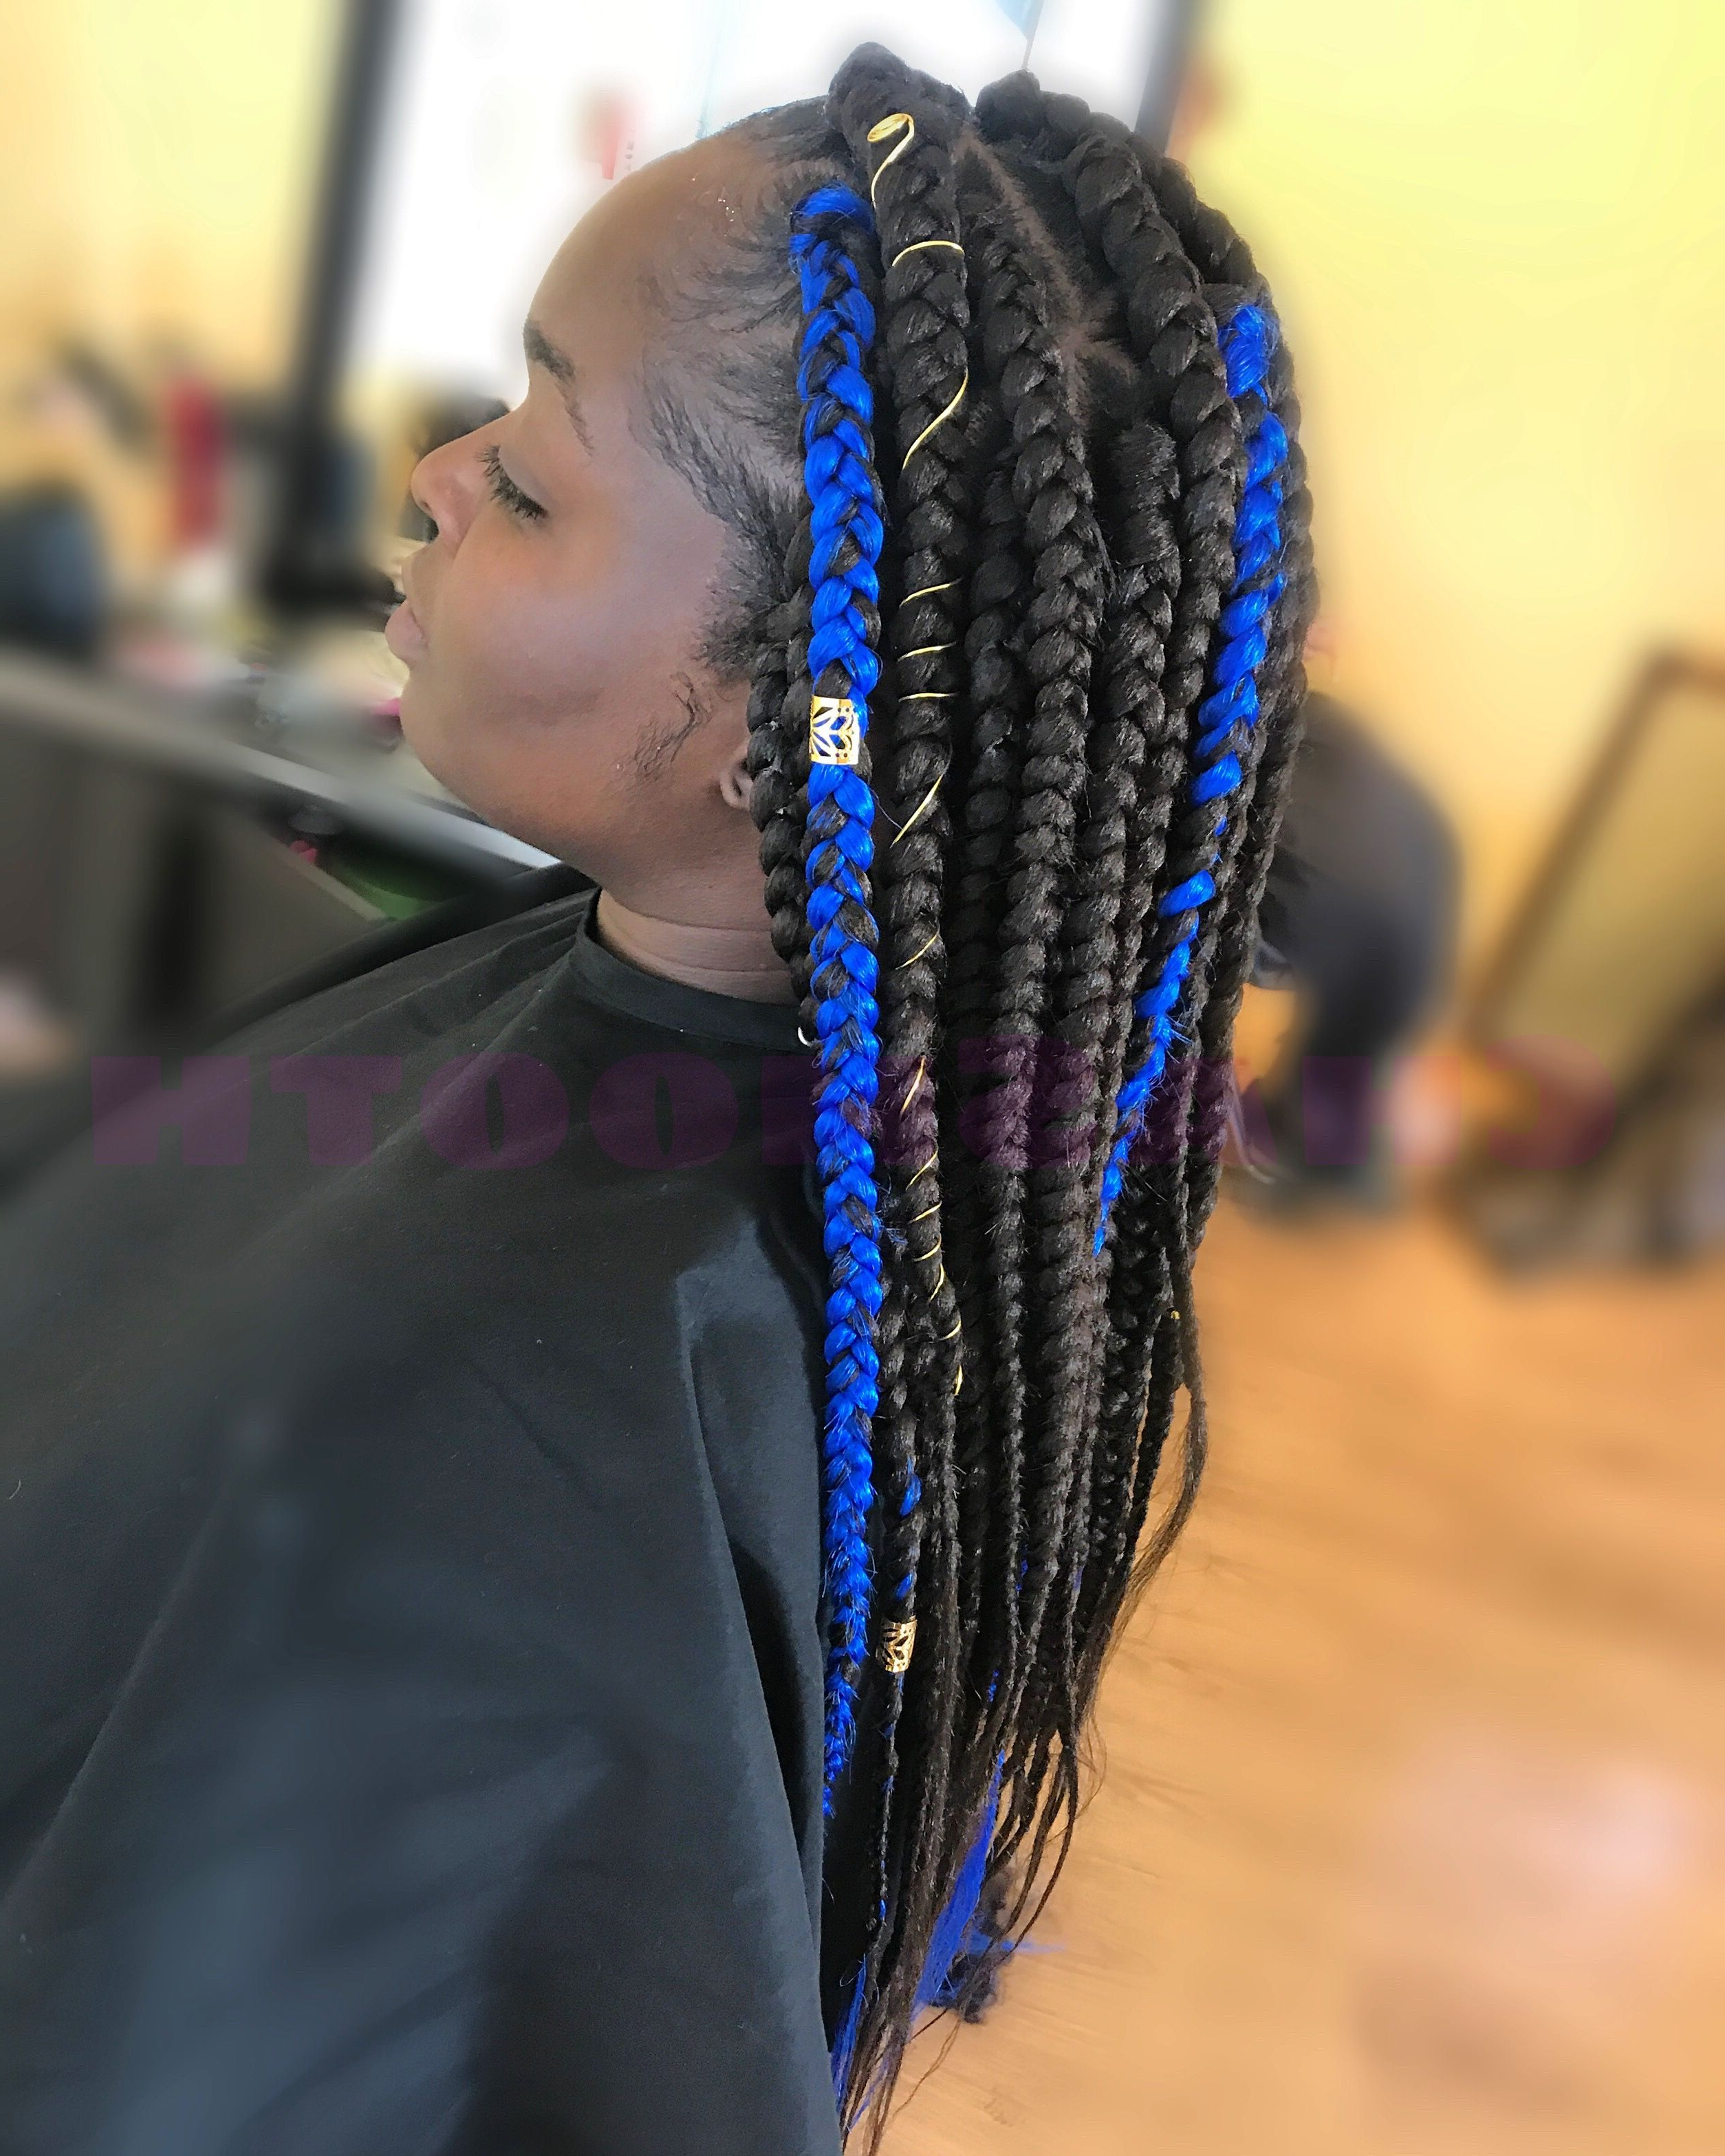 Jumbo Regarding 2019 Blue And Black Cornrows Braid Hairstyles (View 5 of 20)